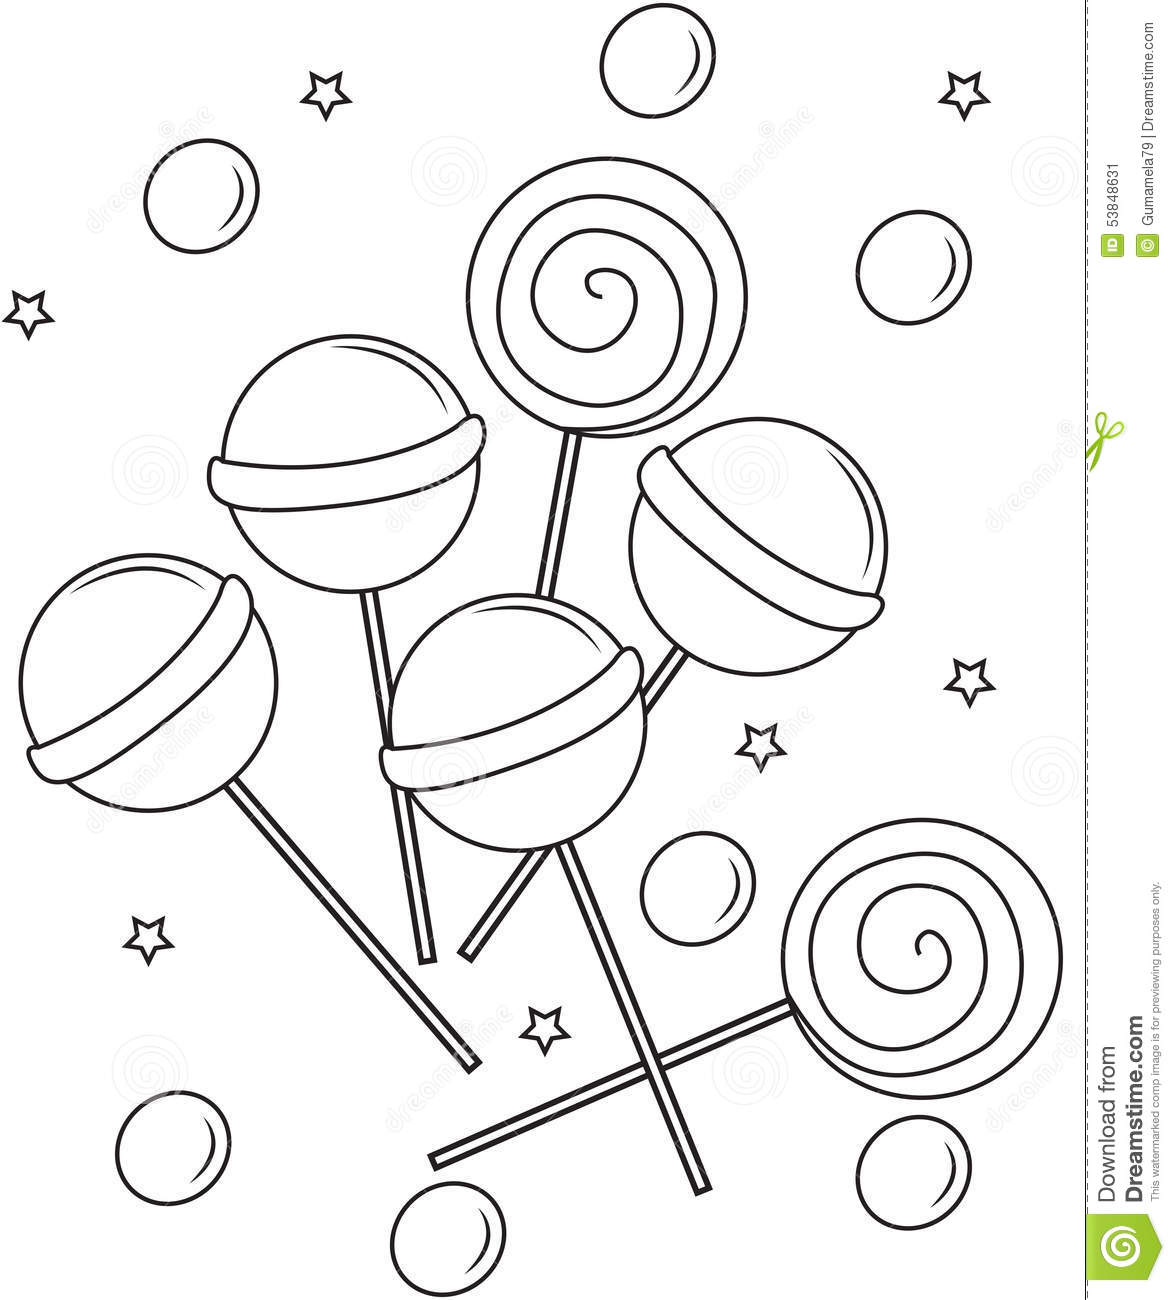 lollipops coloring page stock illustration image 53848631 Cute Squirrel Clip Art Cute Squirrel Clip Art